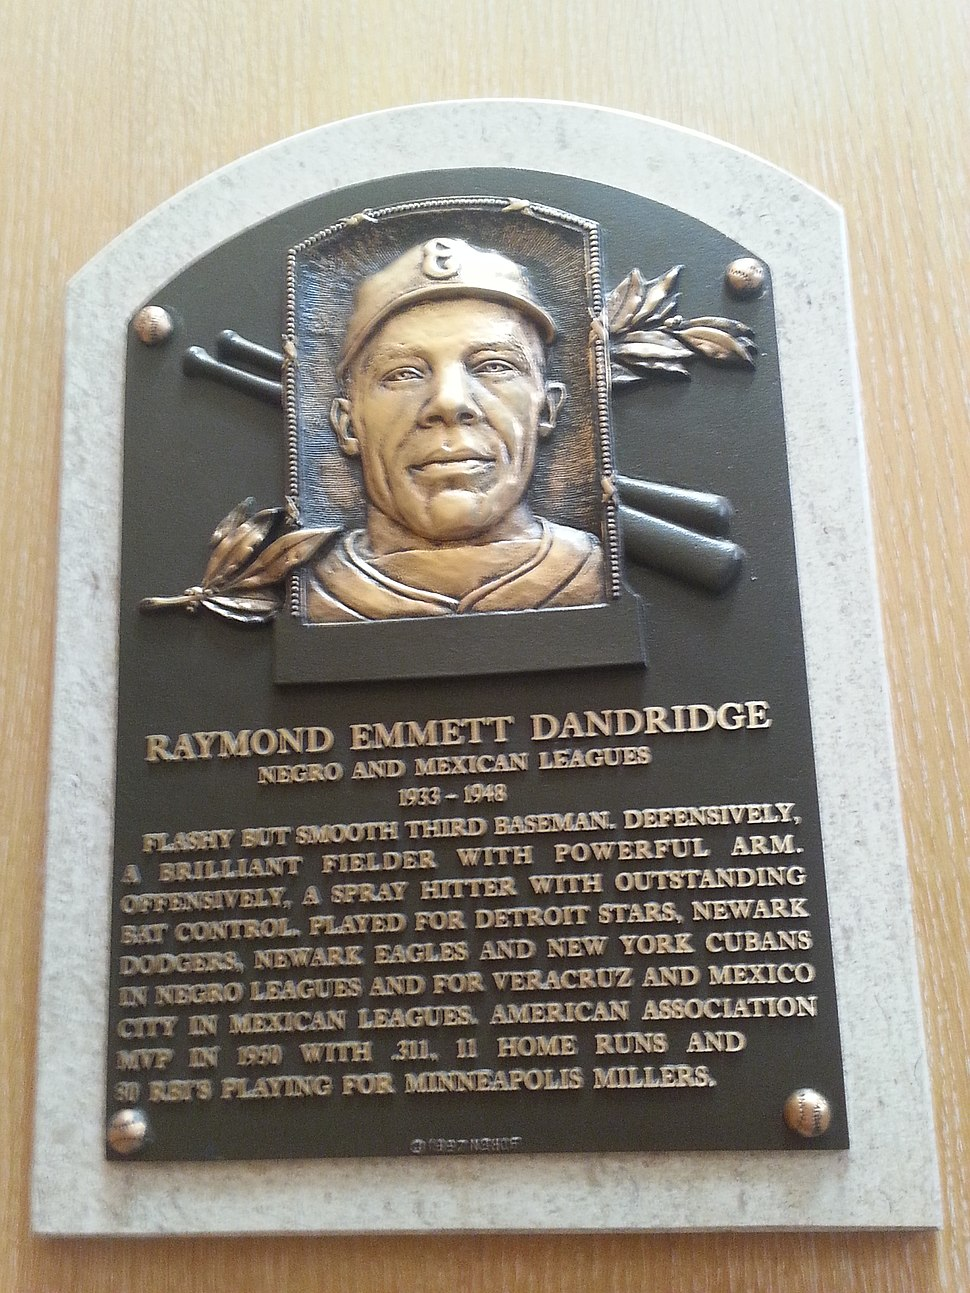 Ray Dandridge plaque